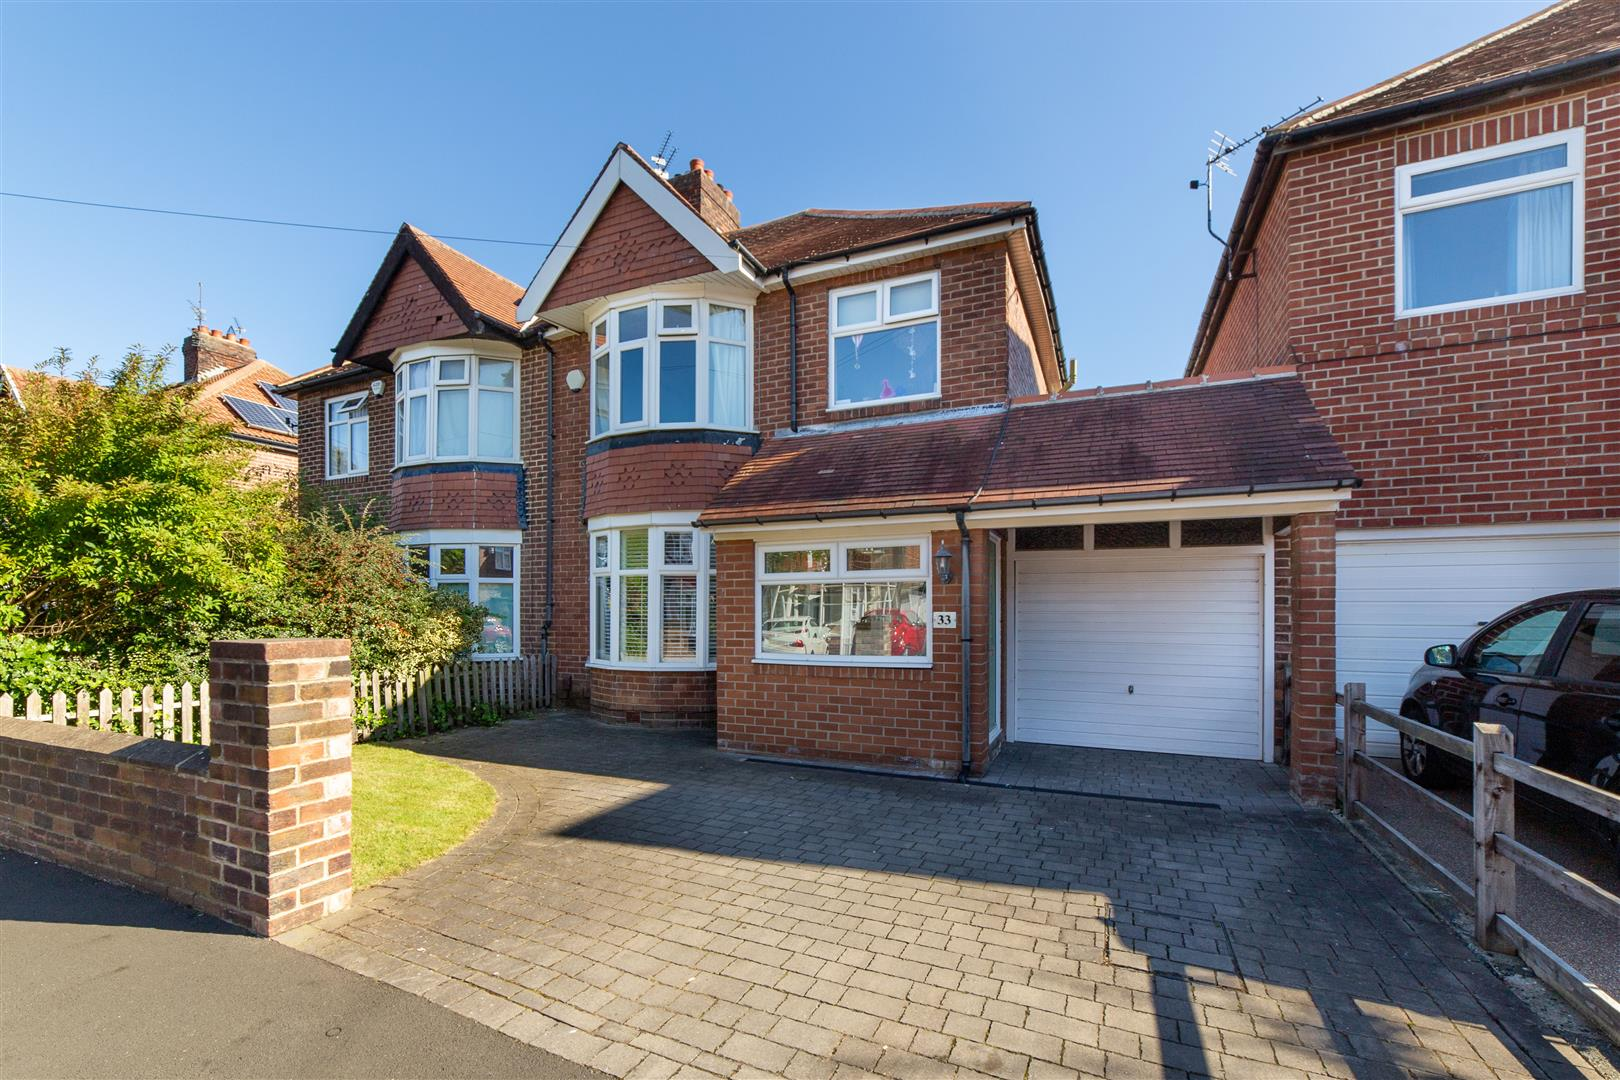 3 bed semi-detached house for sale in Eastwood Gardens, Newcastle Upon Tyne, NE3